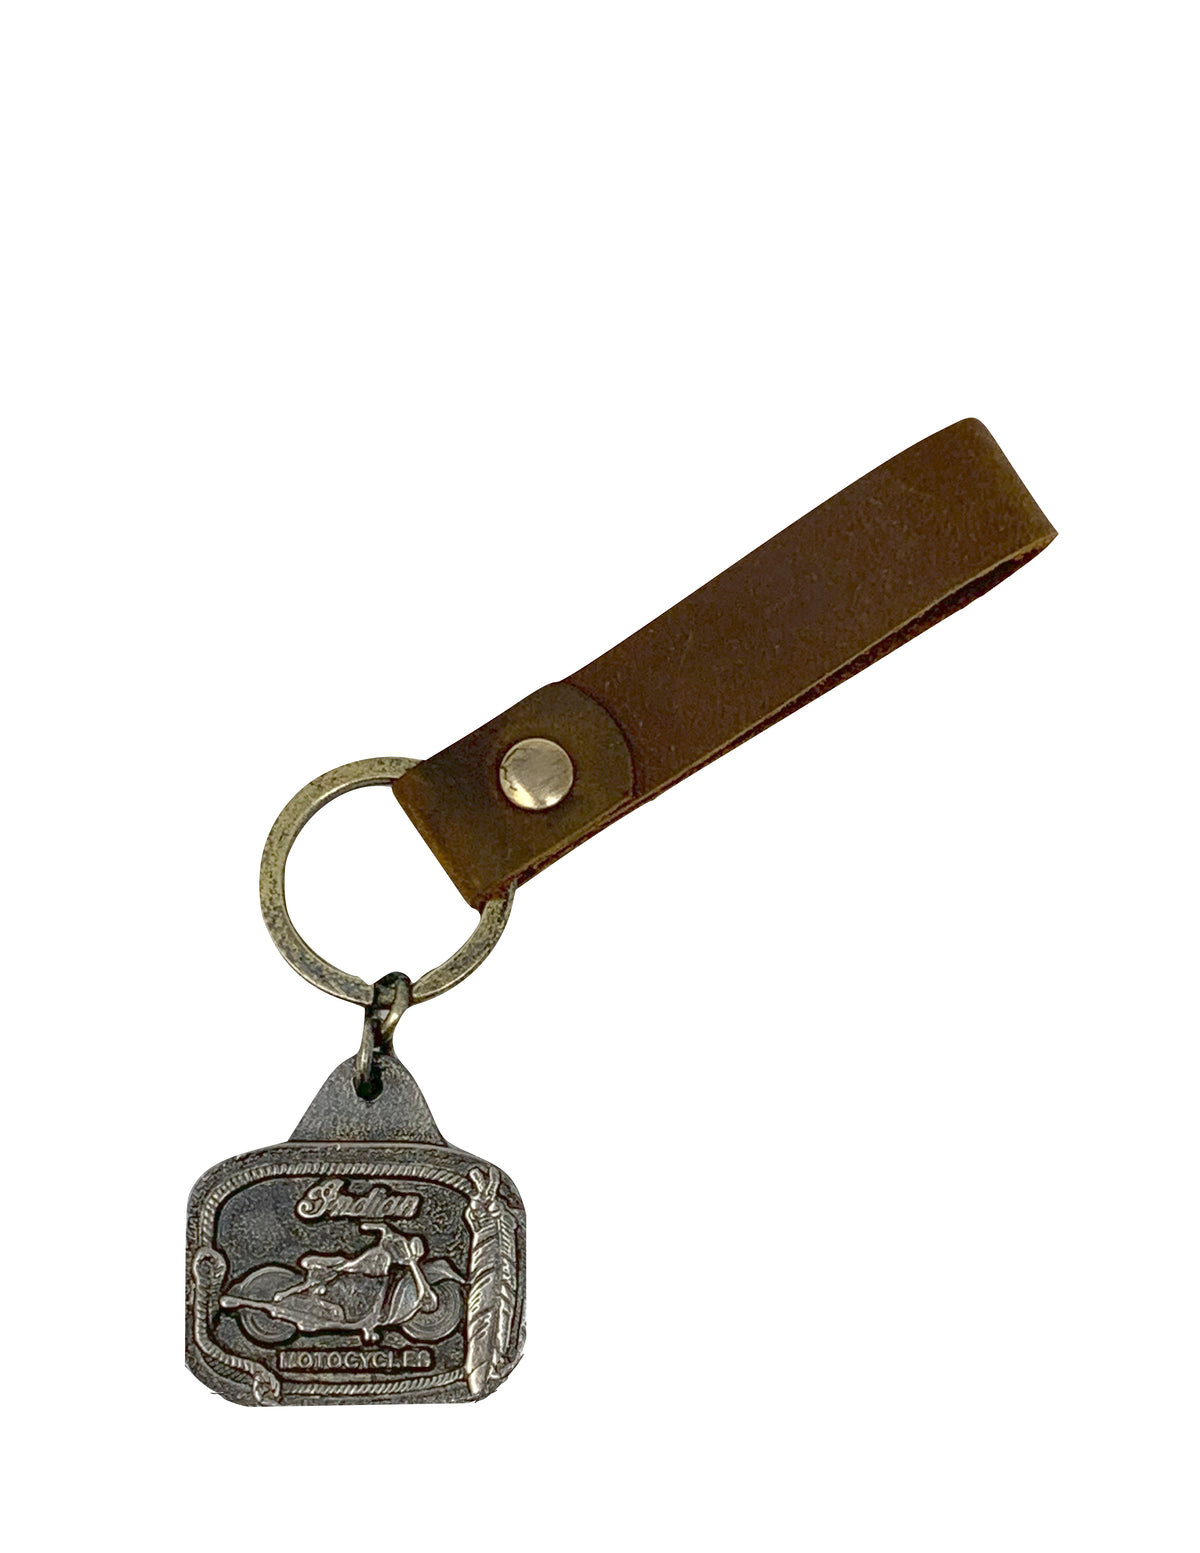 Vintage Indian Motorcycle Leather Key Fob